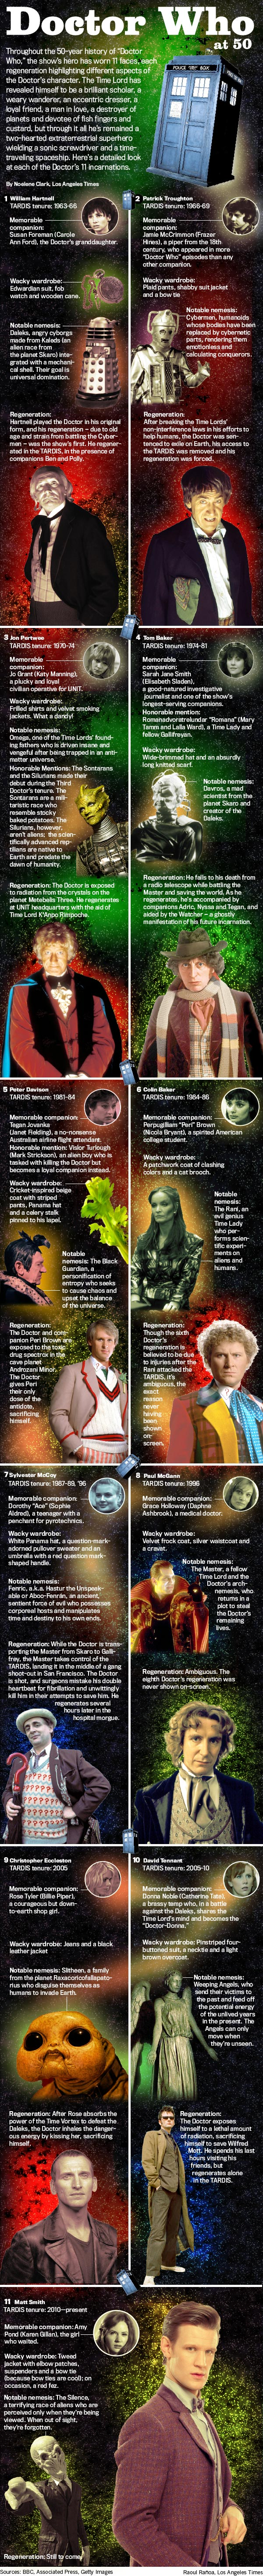 11 Doctor Who Facts